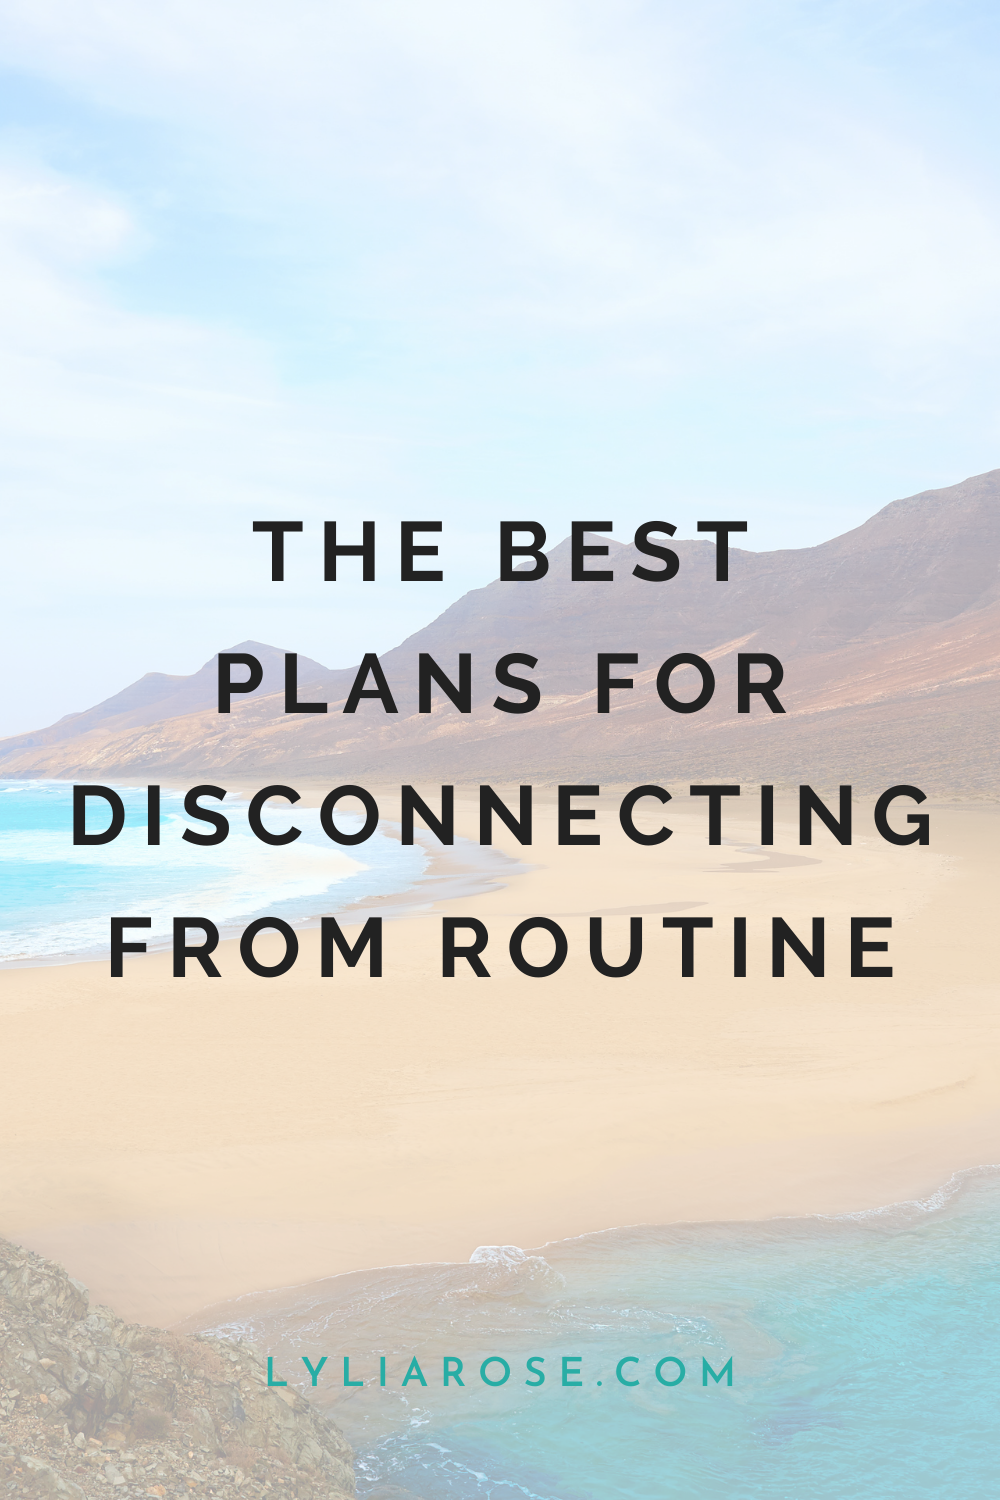 The best plans for disconnecting from routine